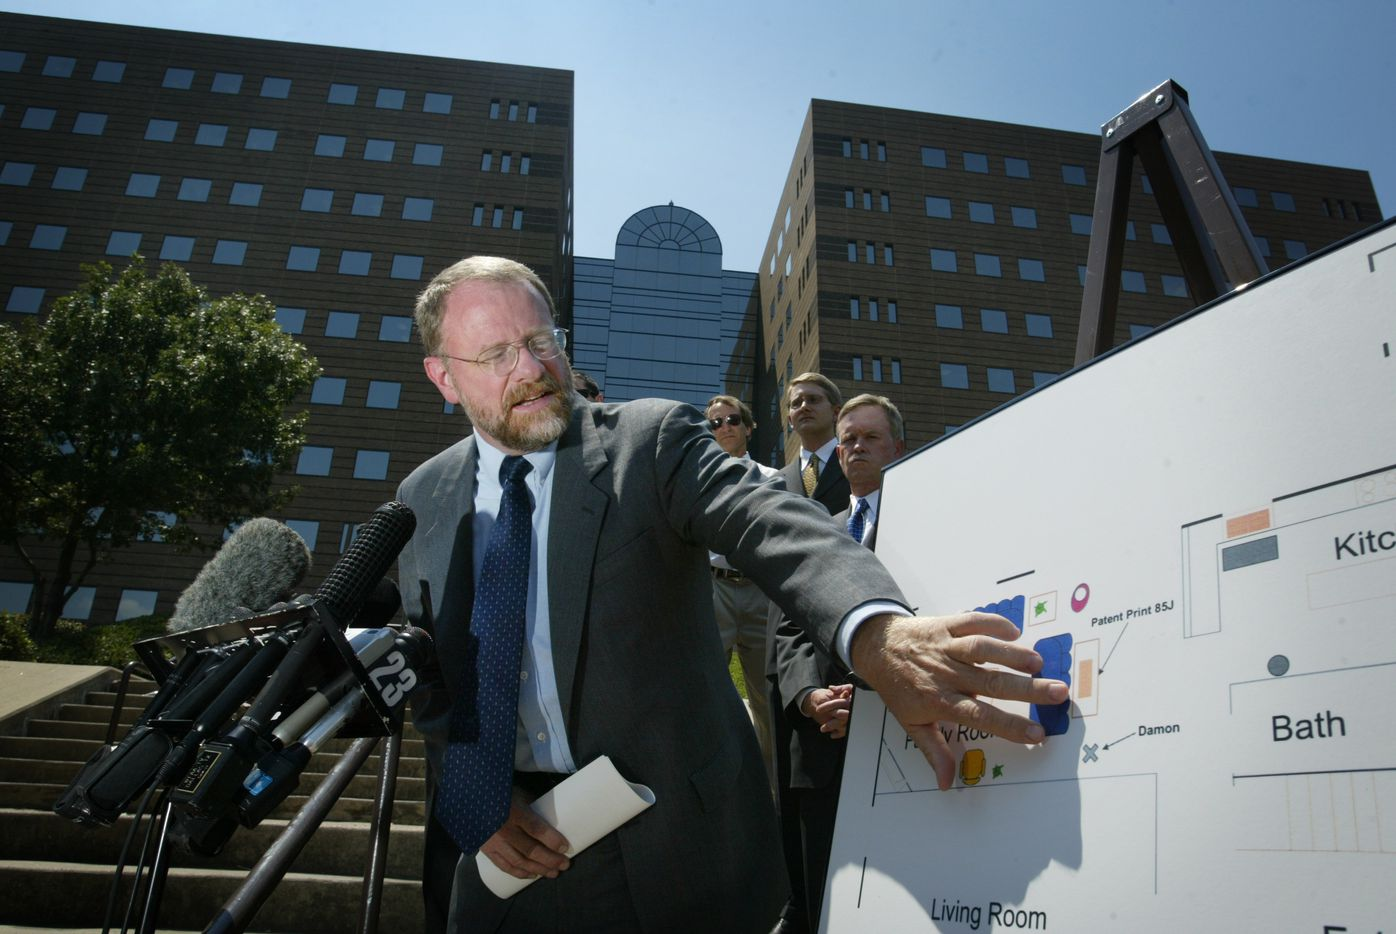 Richard Burr, one of the lawyers for Darlie Routier, shows the position of an unidentified finger print on a map of the Routier home as they talked about the latest developments in her case in 2004. A state district court refused to to examine evidence that they believe points to her innocence.  The news conference was held  in front of the Frank Crowley Courts Building  in Dallas.